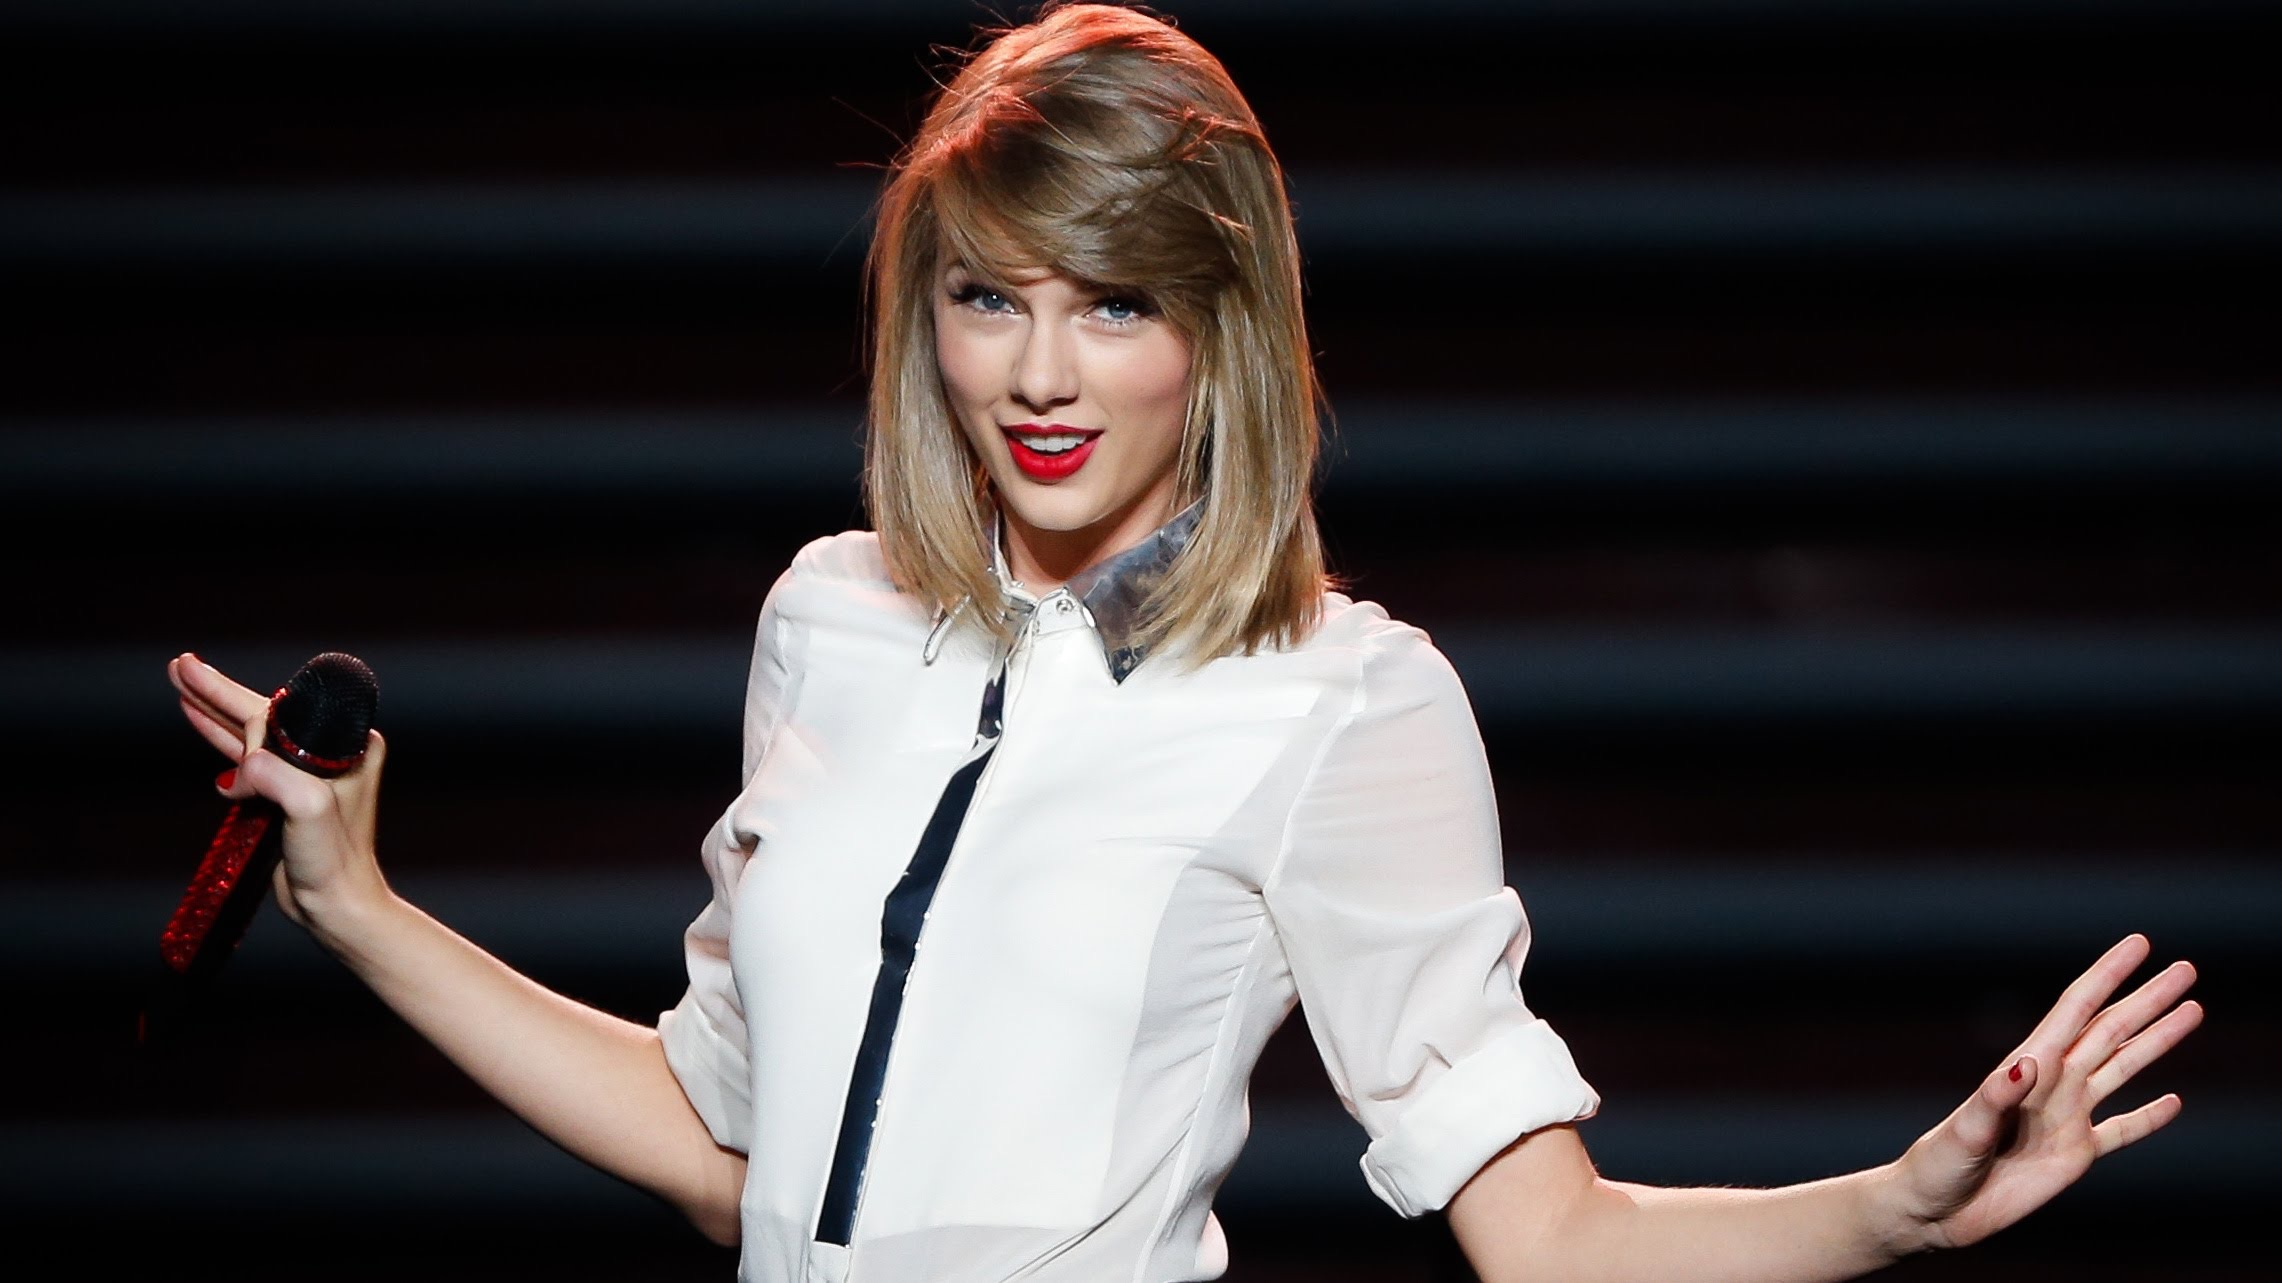 Taylor Swift just had the best response to a sexist tabloid tweet